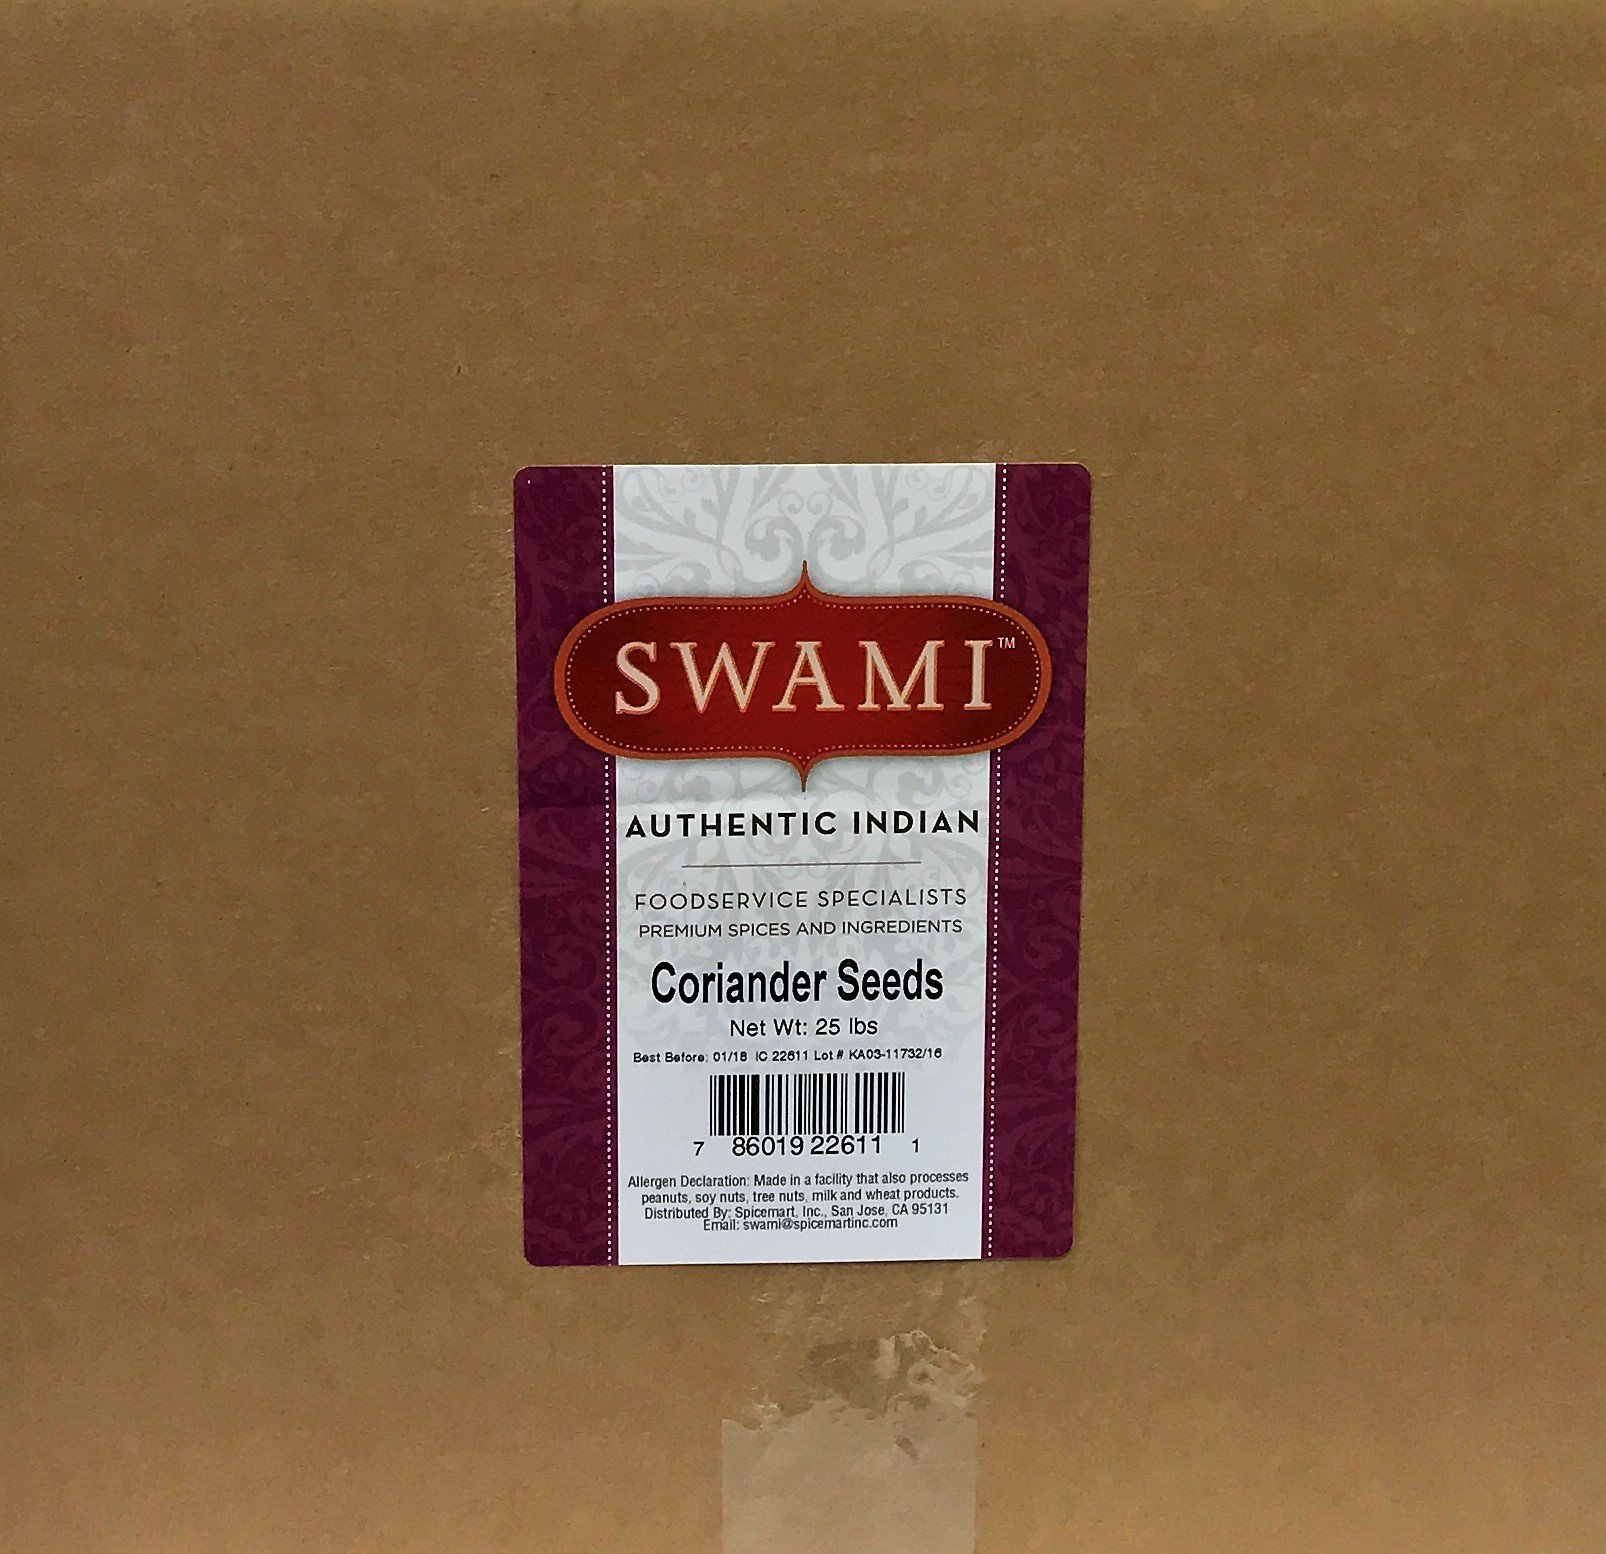 Swami Coriander Seeds- Indian, 25lbs by Spicemart